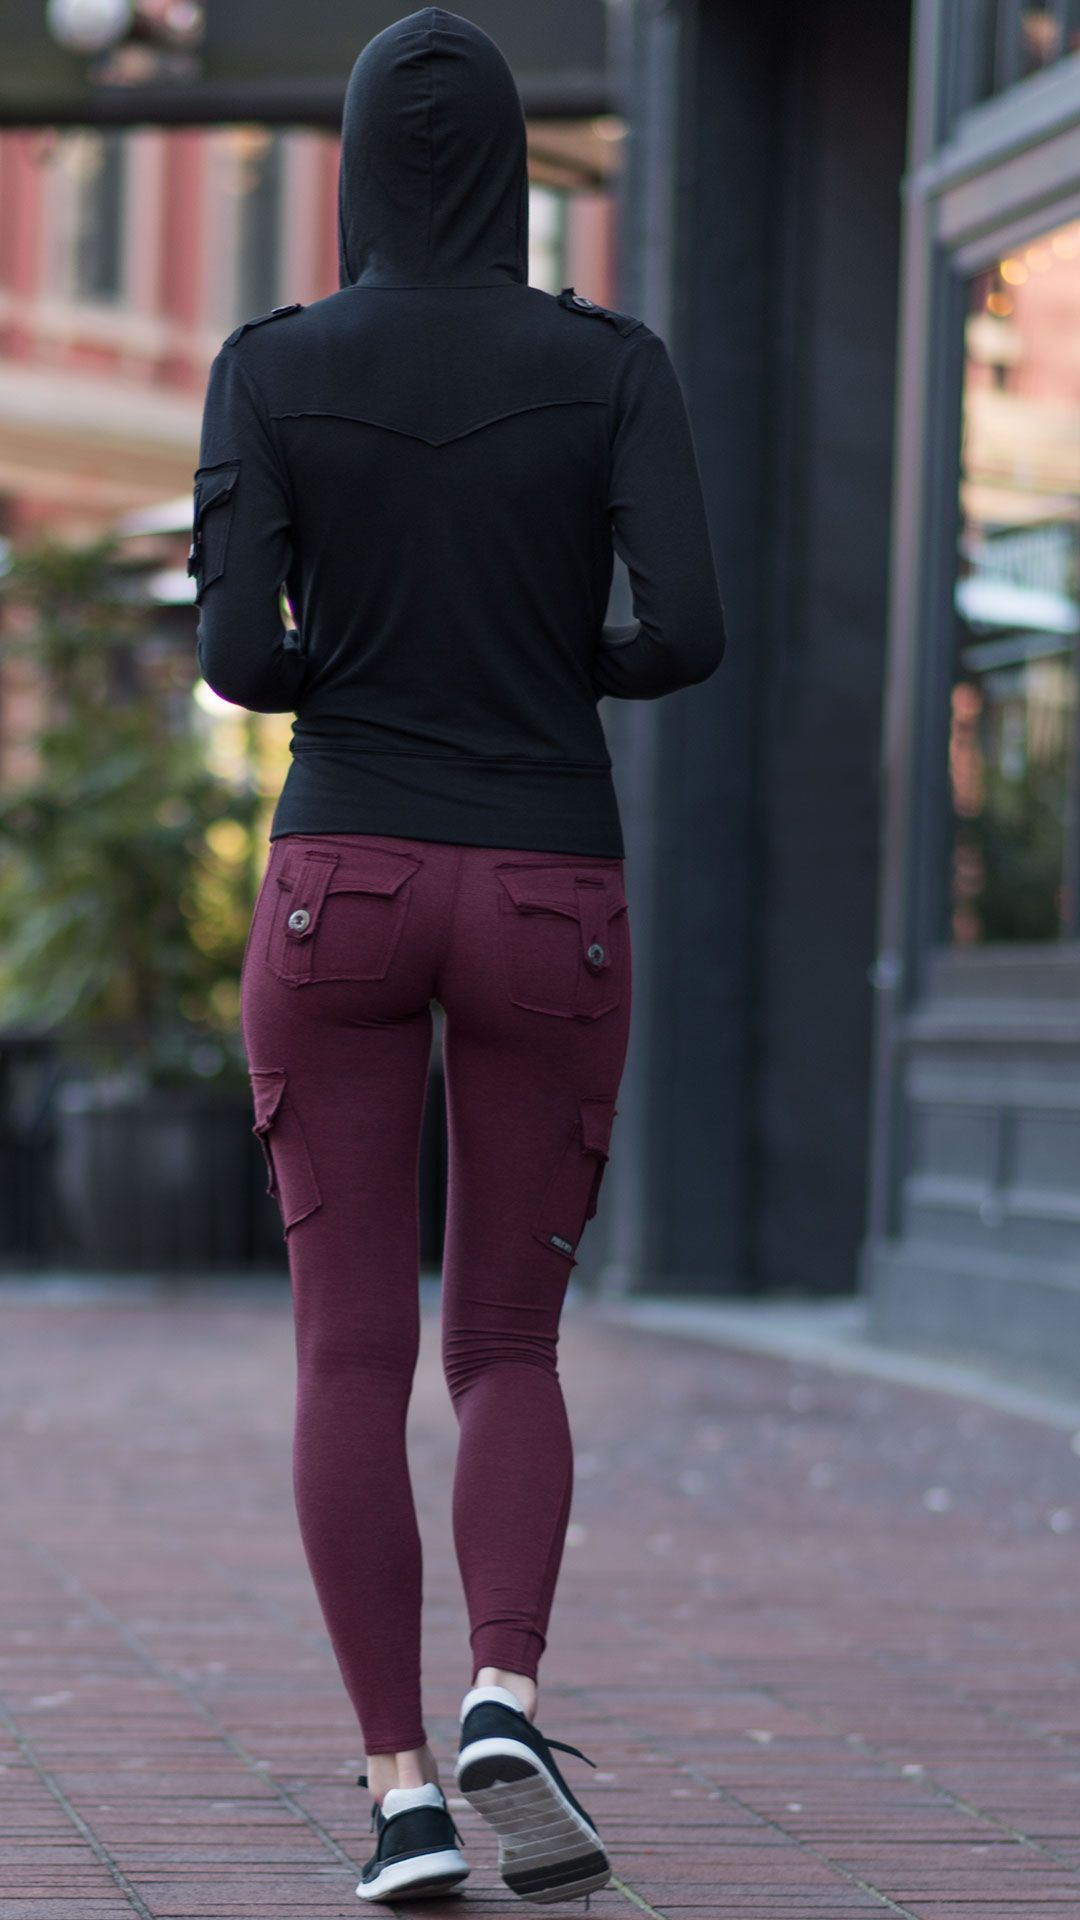 52cd5fb88fca3 Pictured here is our best-seller, the Bamboo Pocket Leggings, paired with  our Bamboo Pocket Hoodie. Bamboo is a natural eco-friendly fabric that is  odour ...